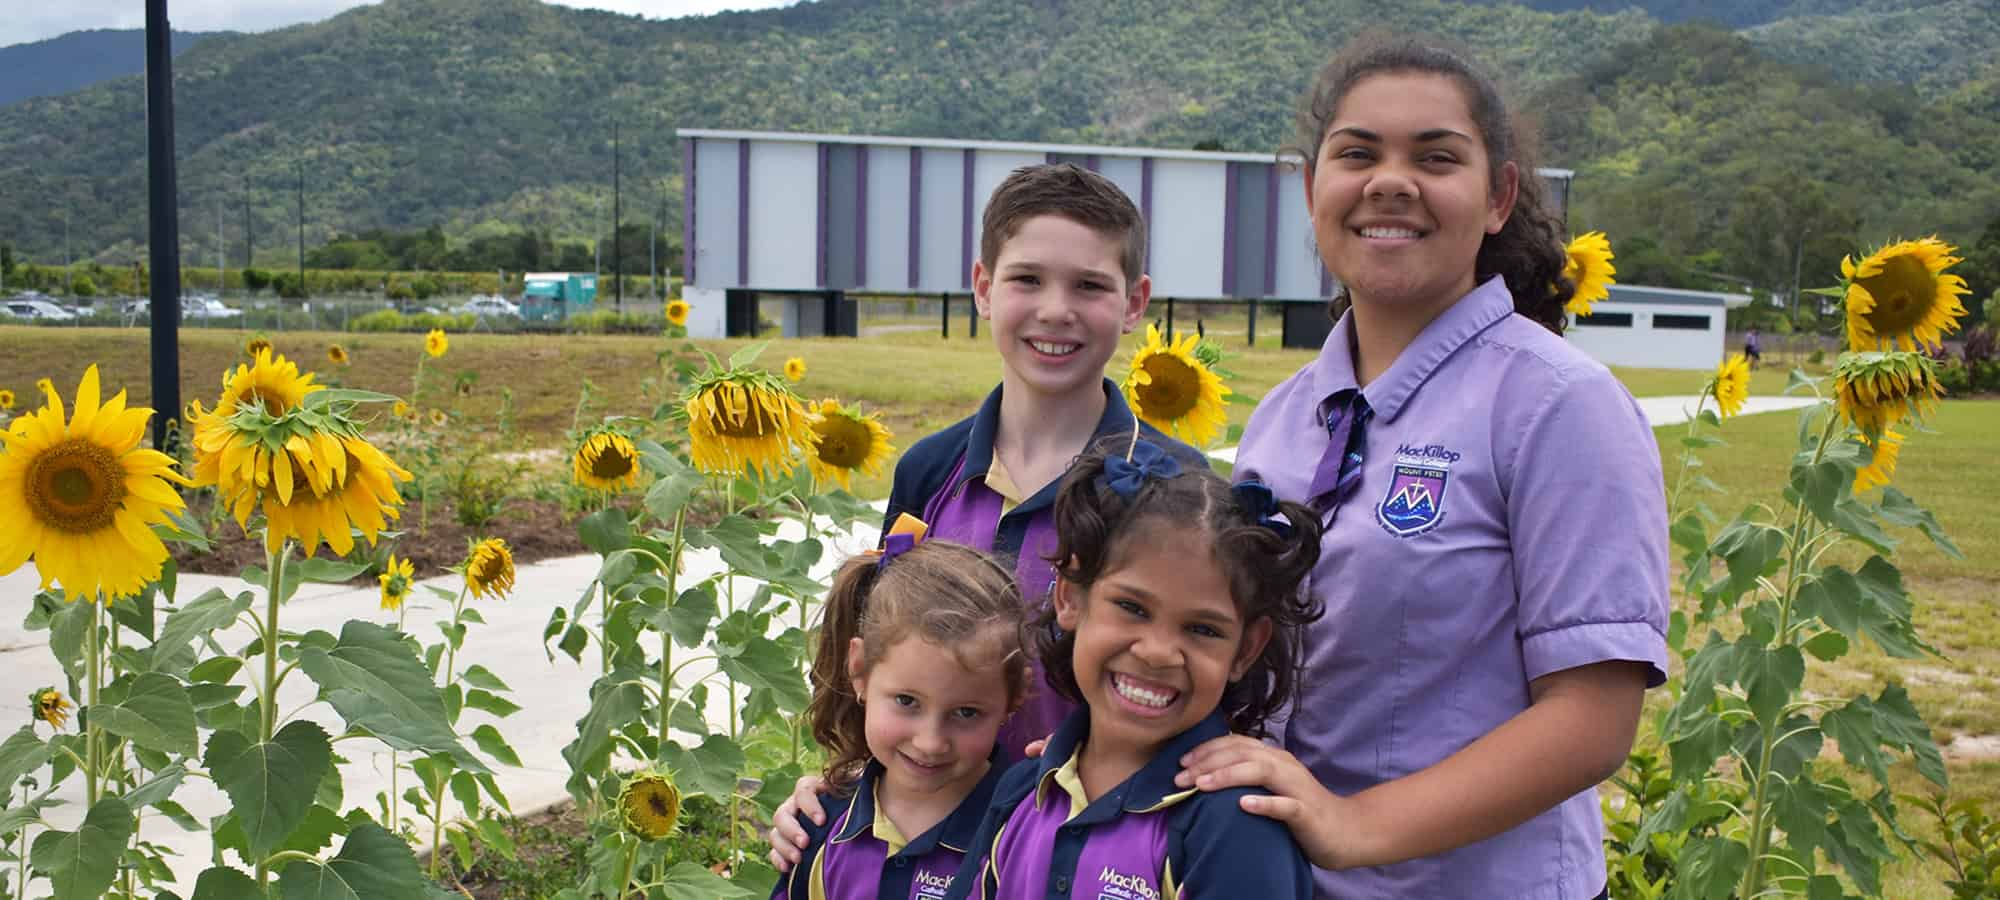 Be Part of Something Amazing at MacKillop!